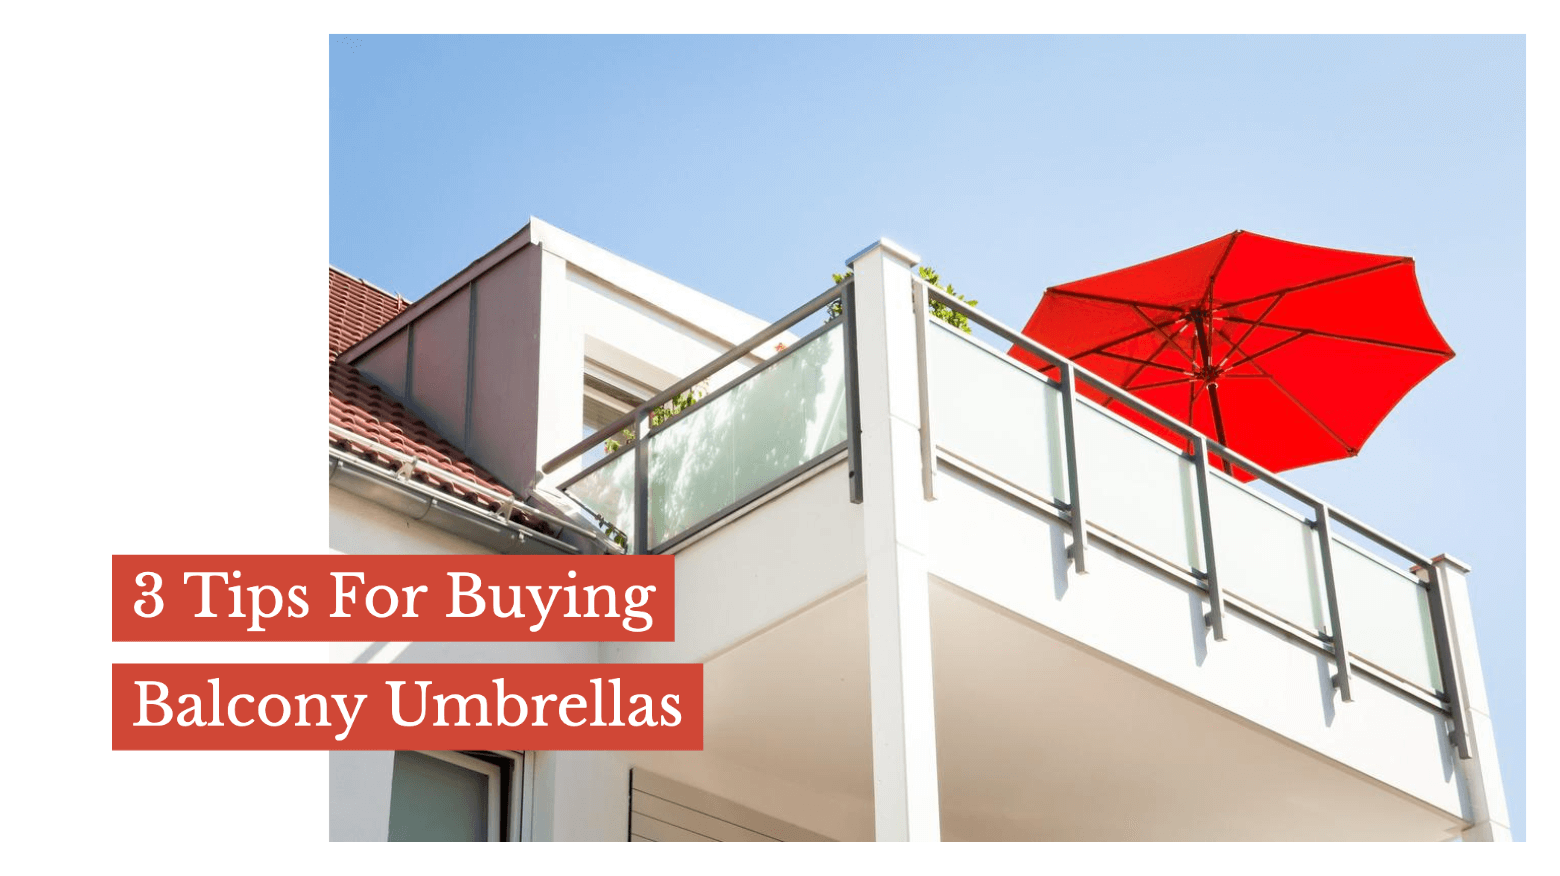 3 Tips For Buying Balcony Umbrellas